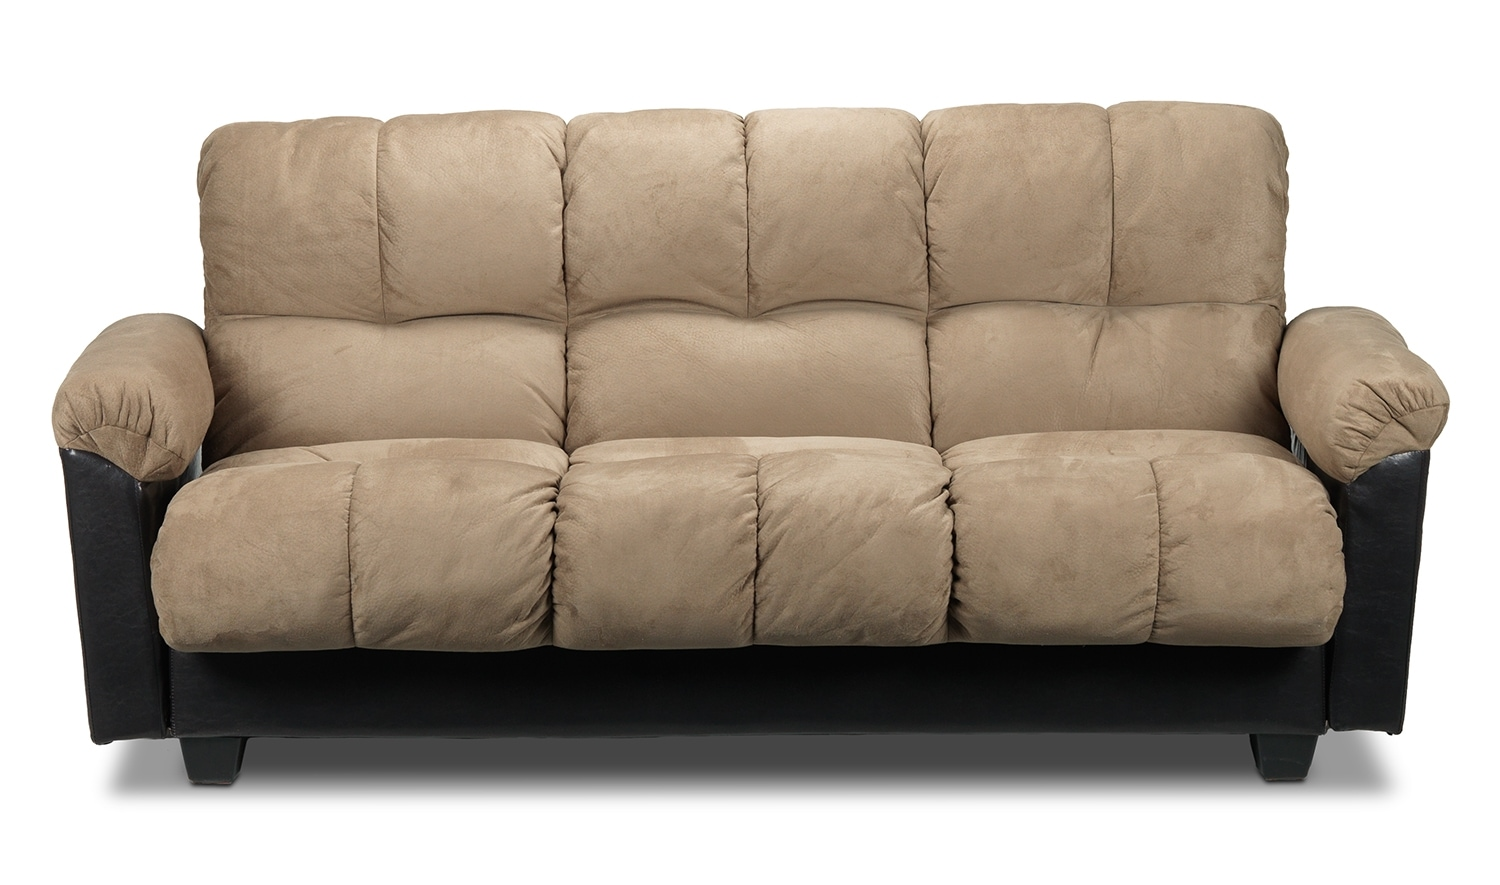 Klik Klak Futon Klik Klak Sofa Reviews